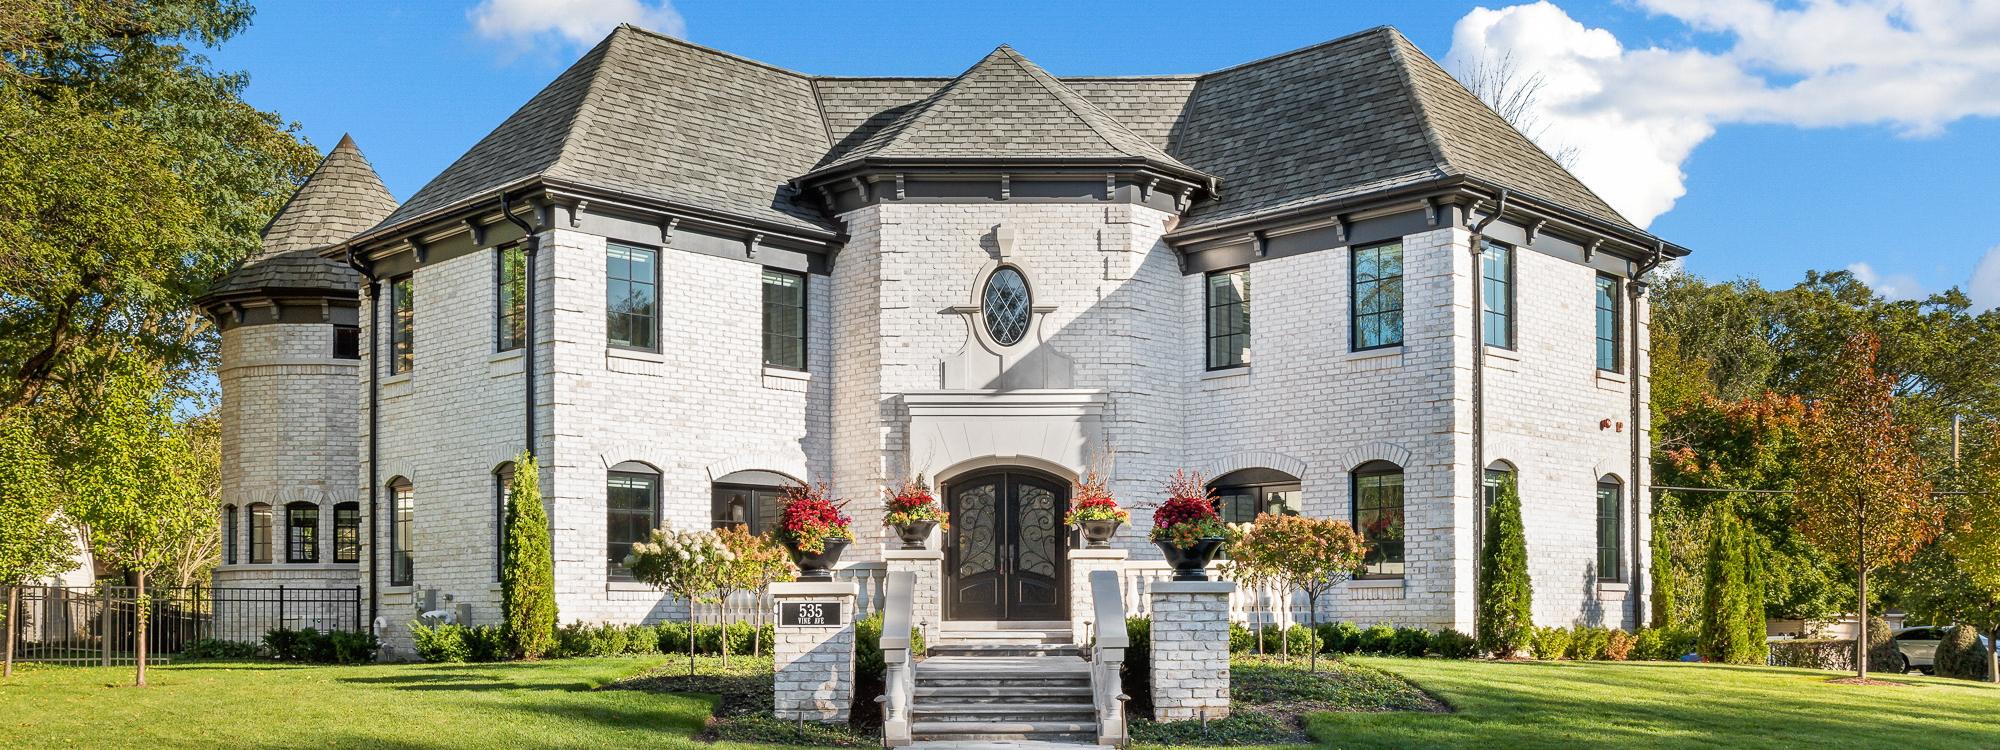 Front of white brick, two-story luxury custom home with hip roof, double door entry, terrace and tourelle